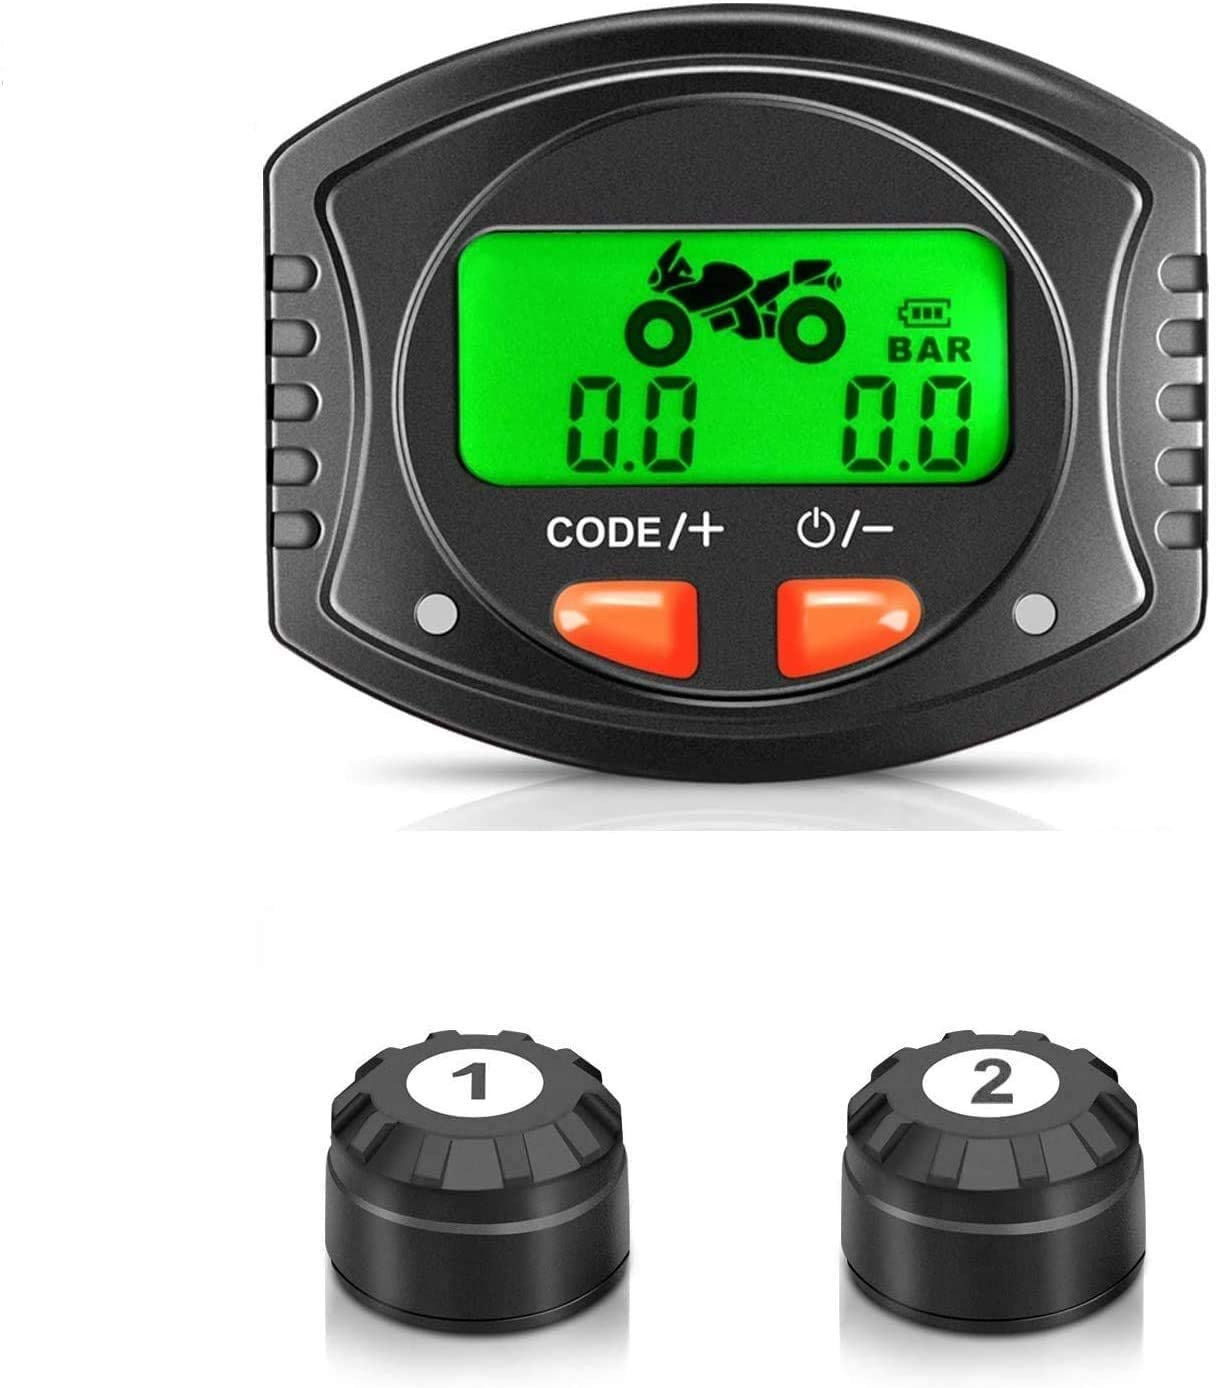 - Wireless Tire Pressure Monitoring System with 4pcs External Sensors -40℃~80℃ Tymate TPMS Solar Power with HD LCD Screen- Real-time Displays 4 Tires Pressure 0-6.0 BAR - 6 Alarm Modes Temperature